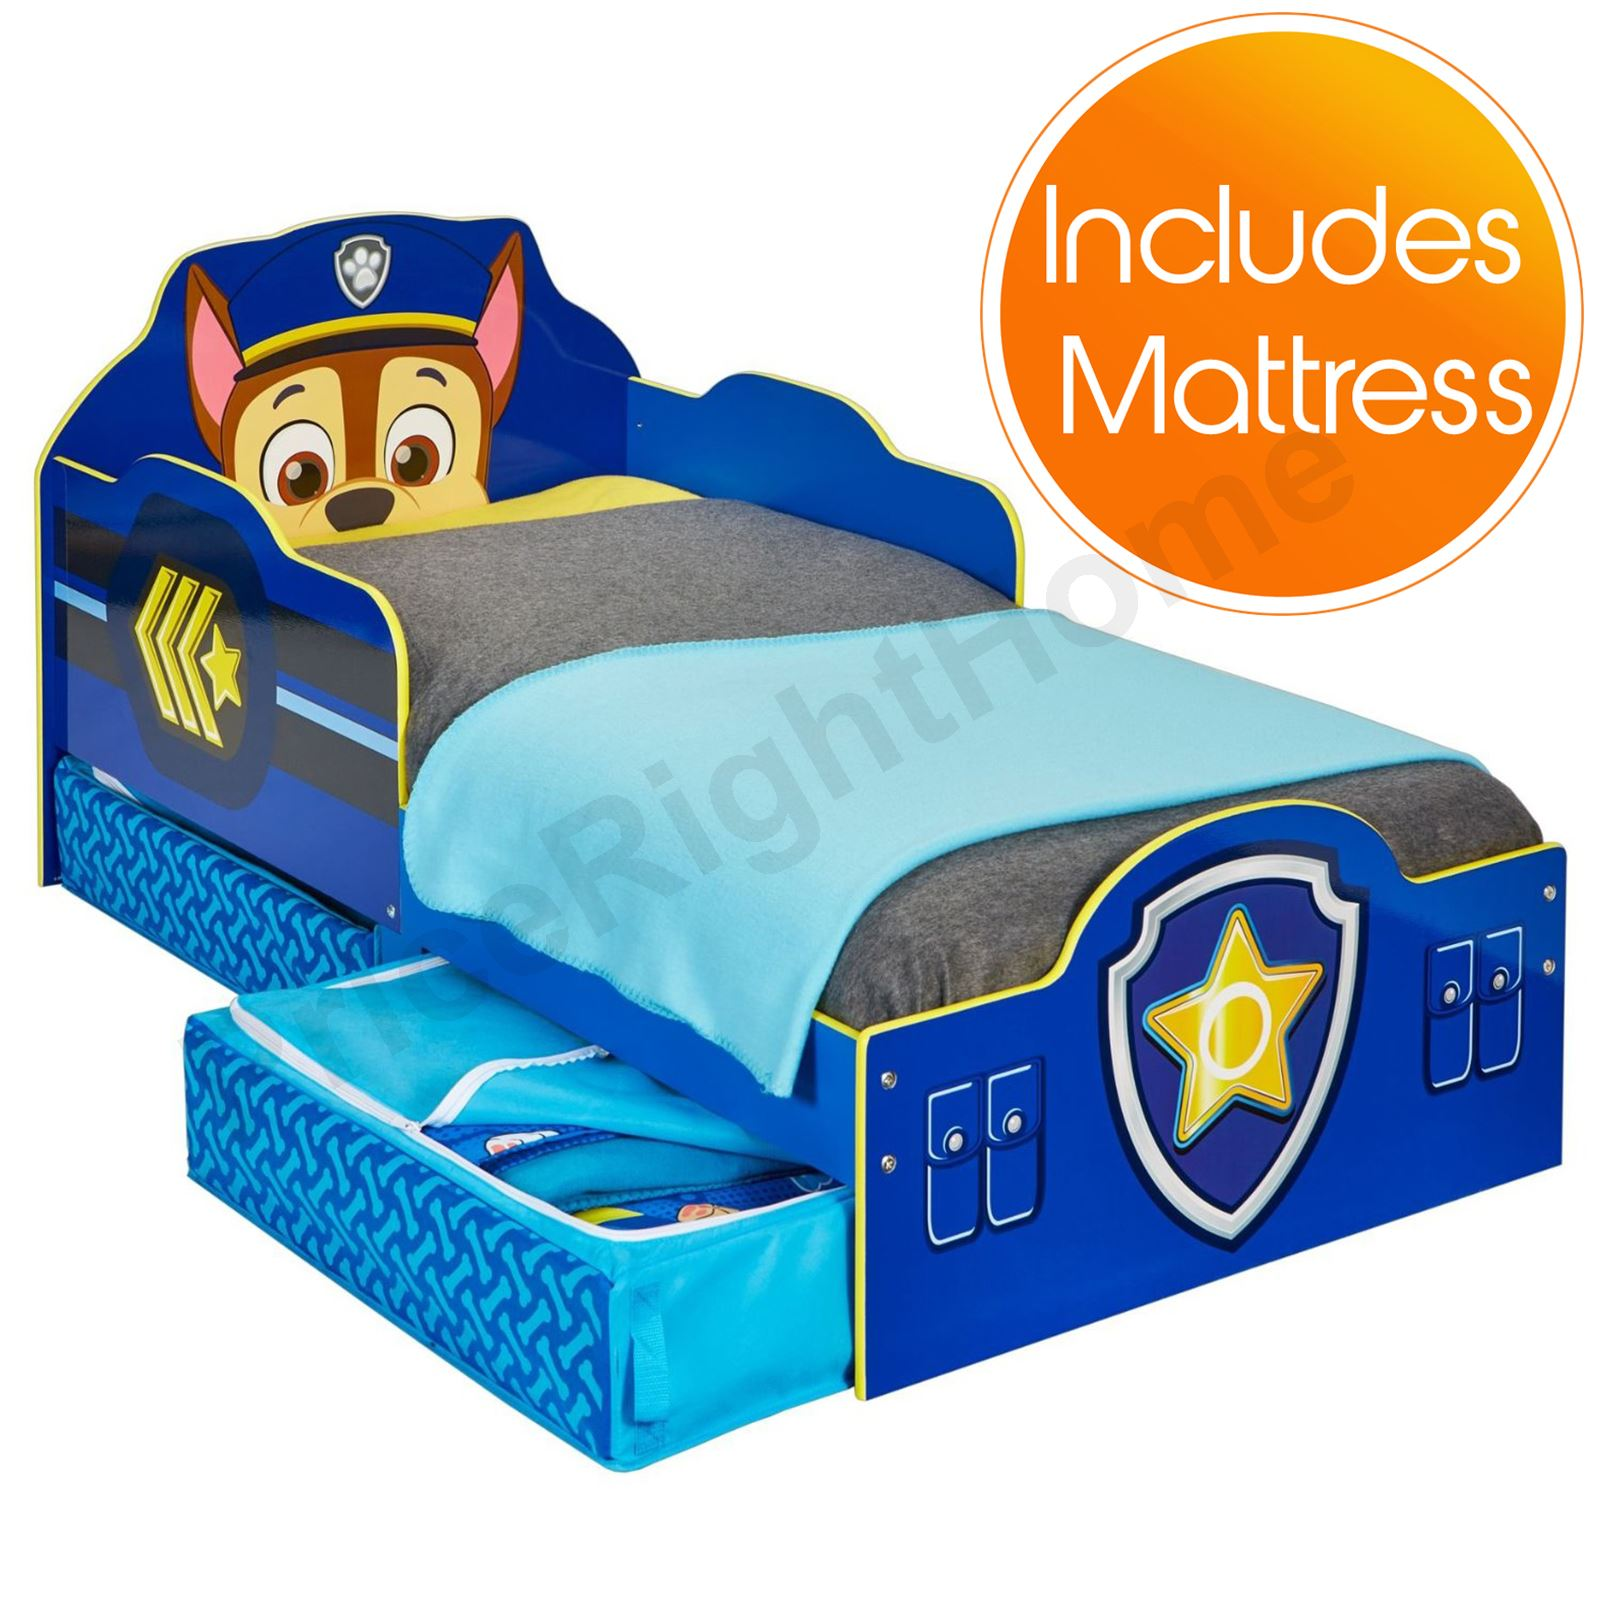 paw patrol chase kleinkind bett mit lager blau schaum matratze ebay. Black Bedroom Furniture Sets. Home Design Ideas